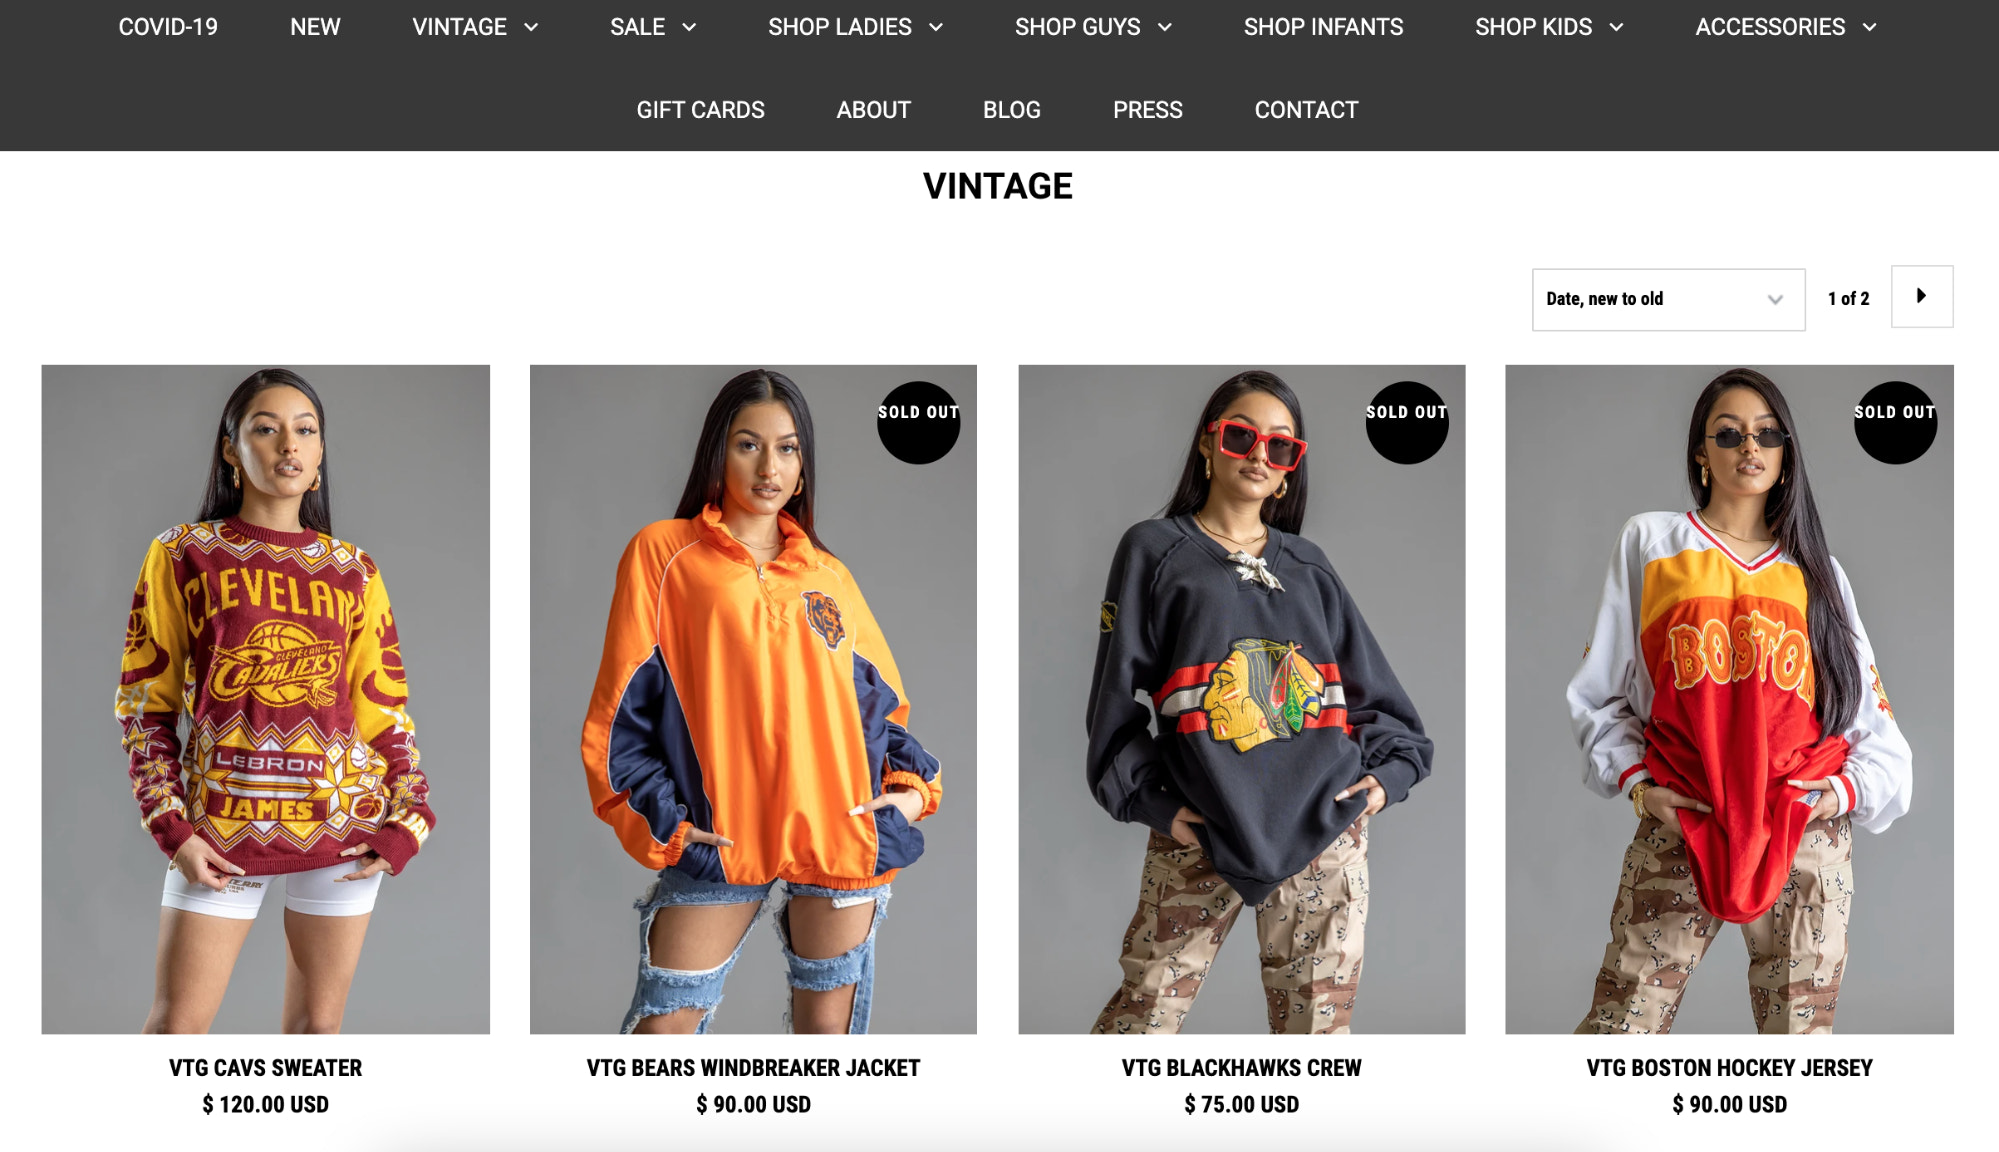 COAL N TERRY homepage featuring their various vintage clothing lines